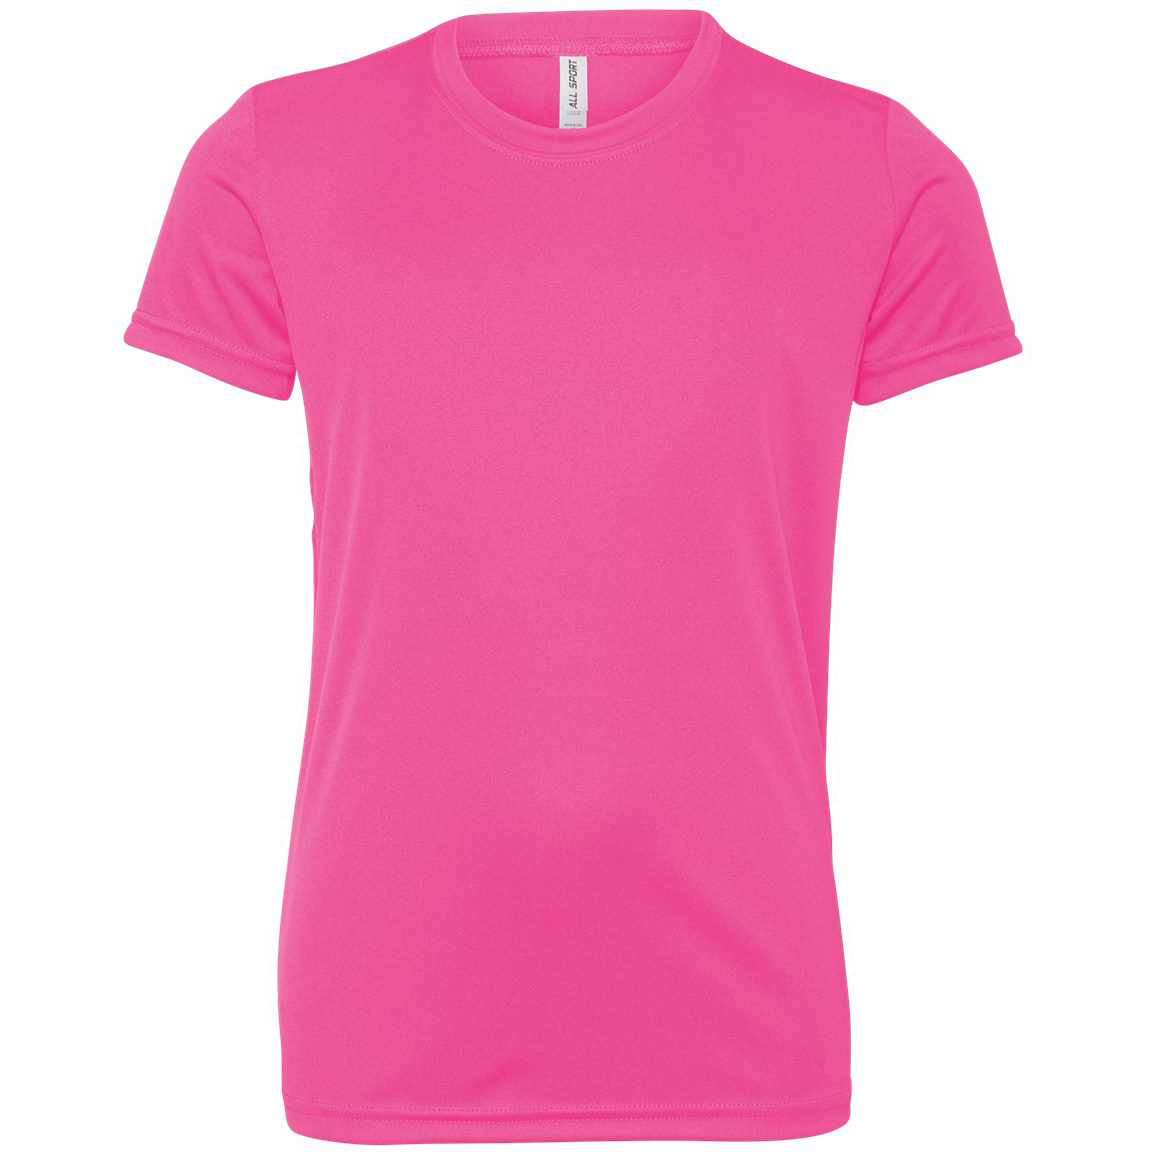 76ac60a56bcf All Sport Y1009 Youth Performance Short Sleeve T-Shirt - Sport Charity Pink